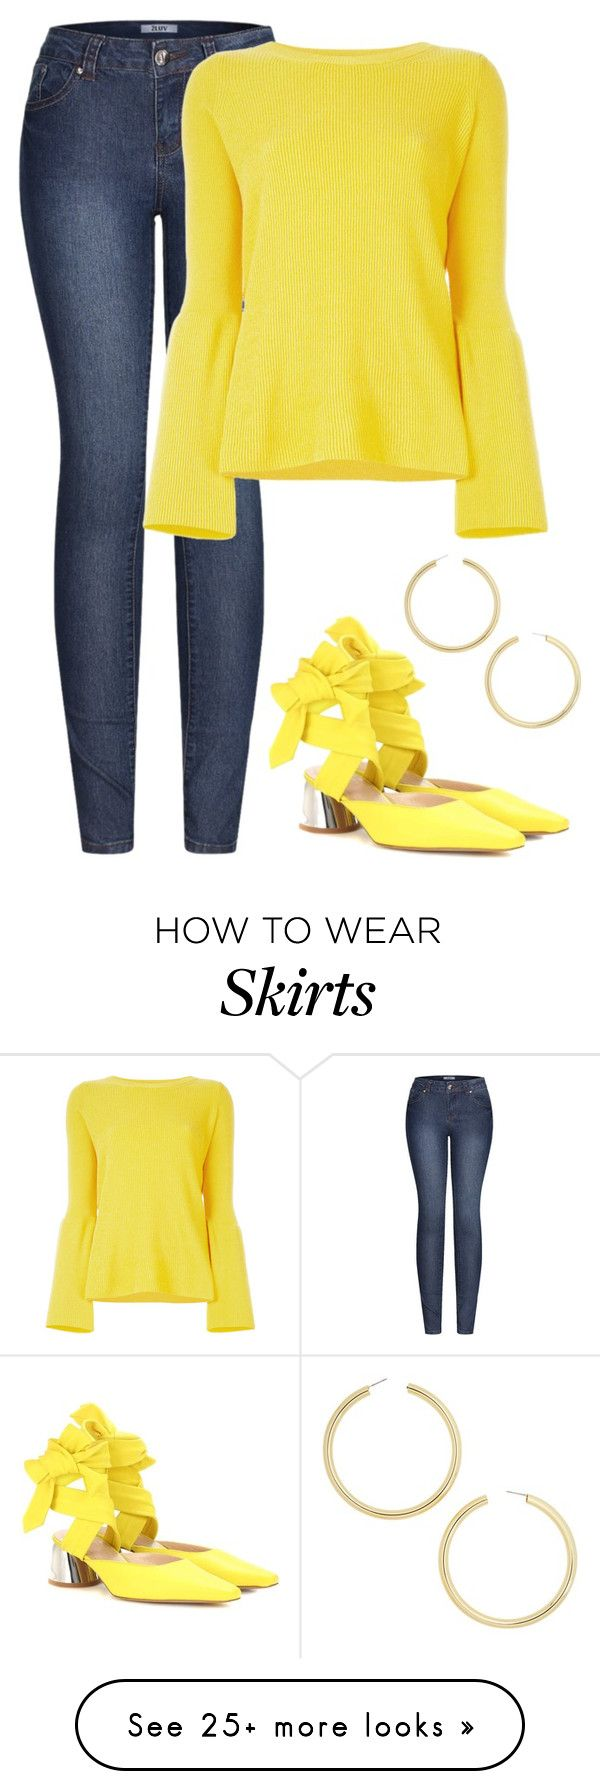 """Yellow"" by giulia-ostara-re on Polyvore featuring 2LUV, STELLA McCARTNEY, E L L E R Y and BaubleBar"